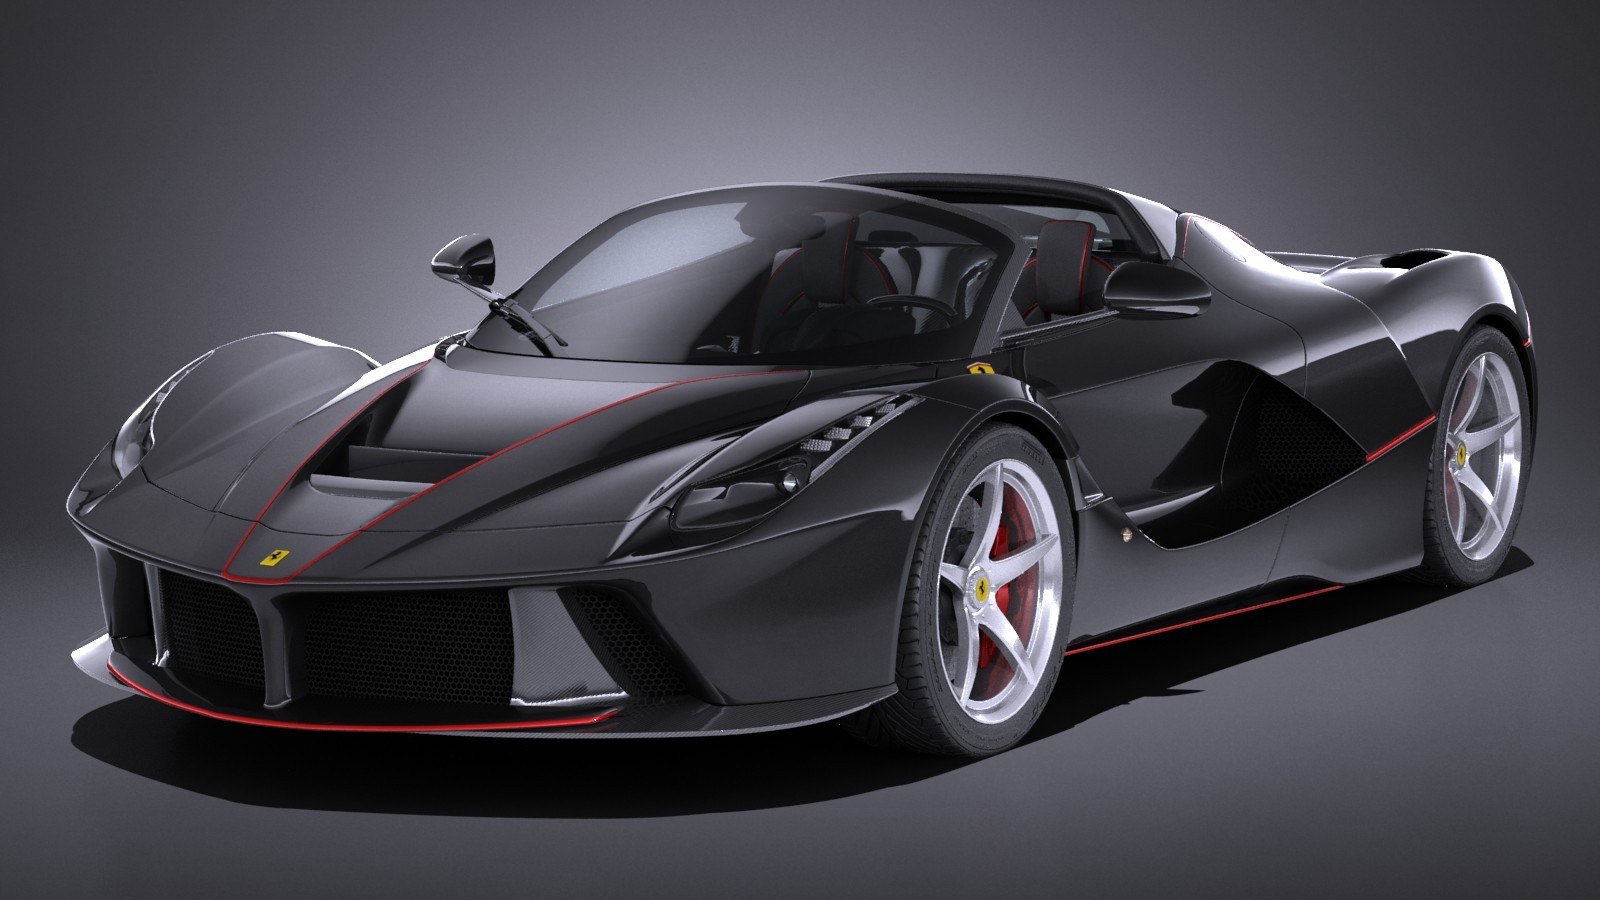 The Ferrari LaFerrari Stood Out When It Was First Introduced At The 2013  Geneva Auto Show, Despite The Fact That It Had To Share The Floor With A  New ...